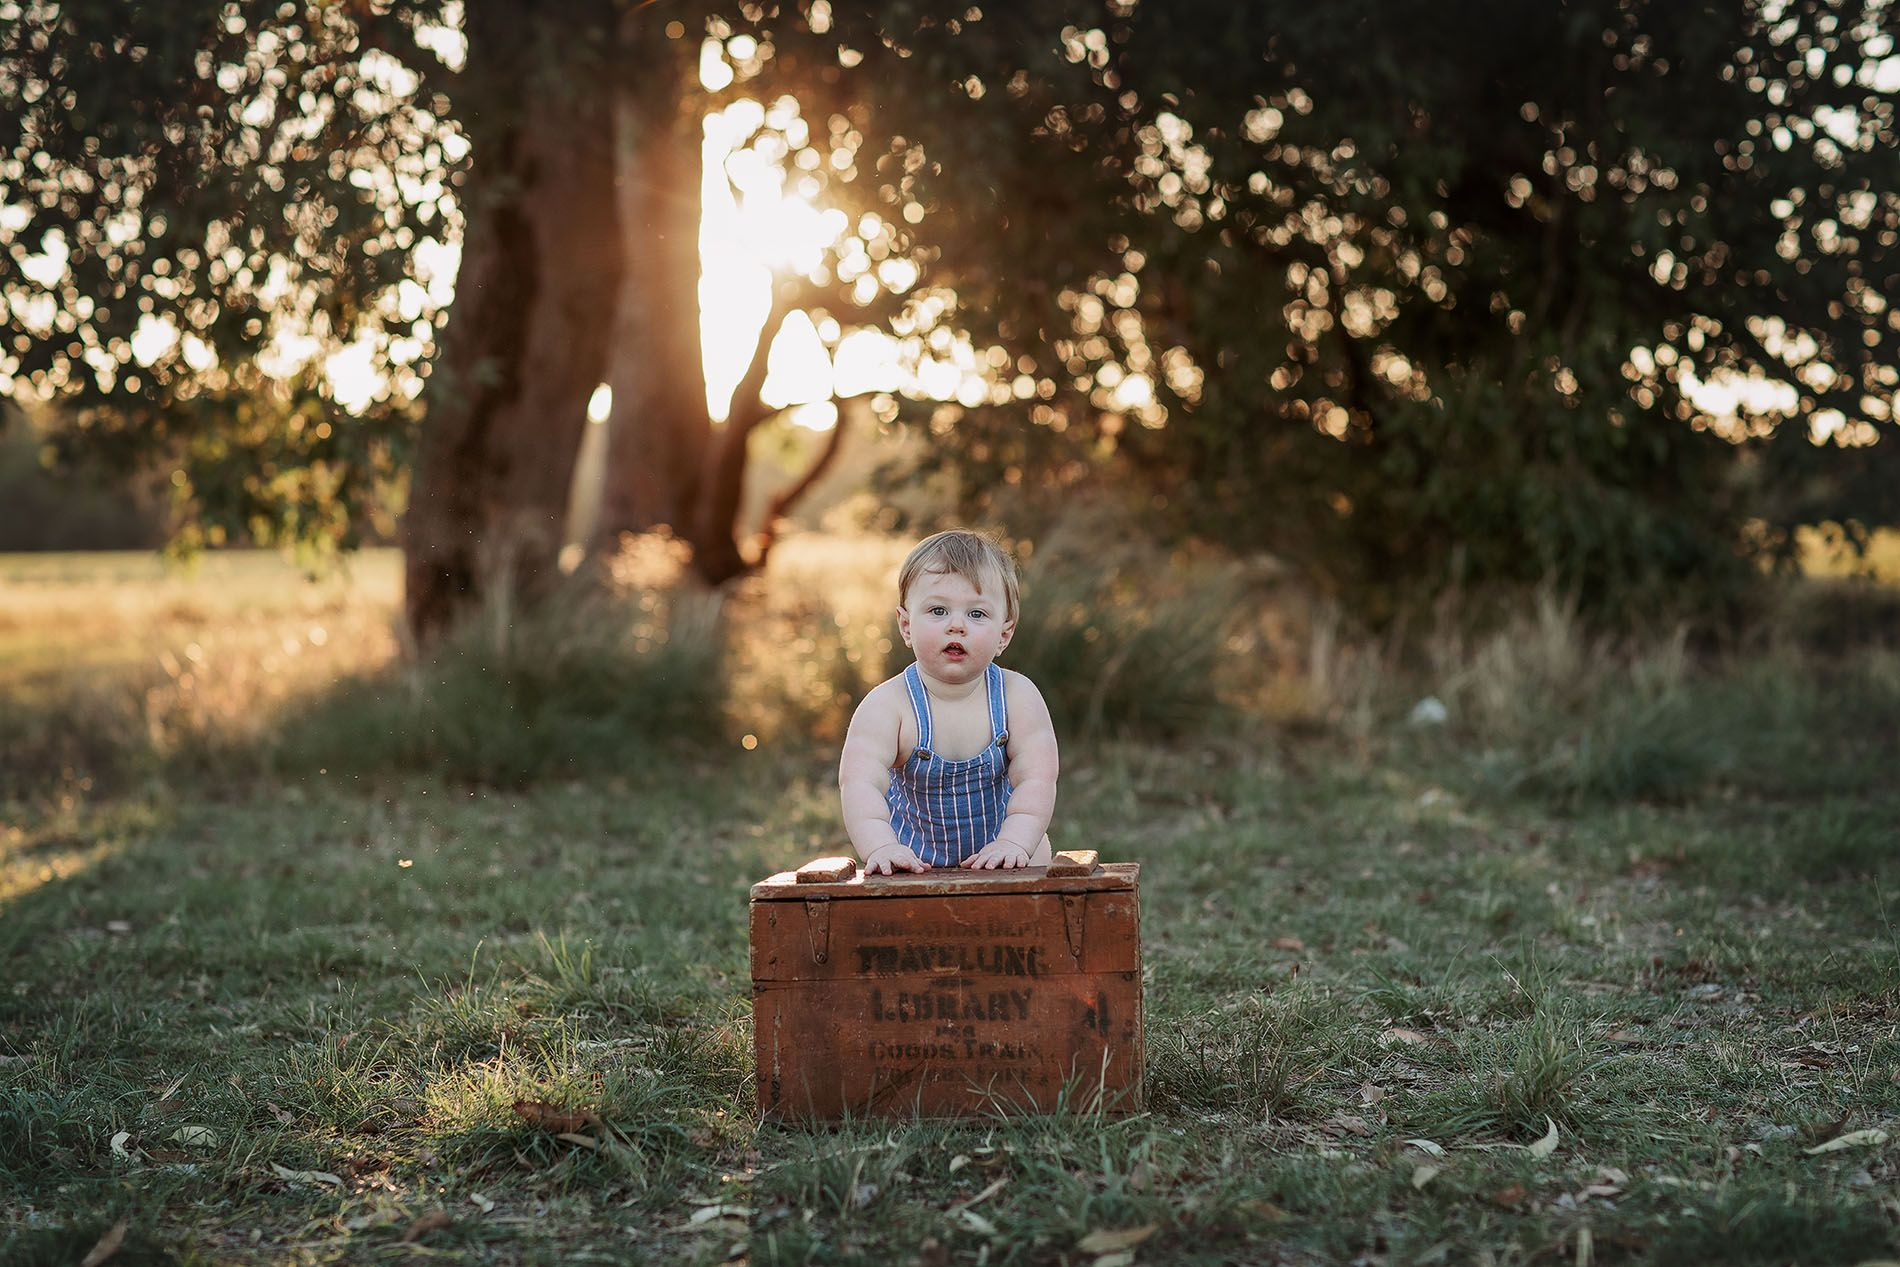 Little Brown Rabbit Photography - Baby photographer in Perth - one year old in a  field with wooden box